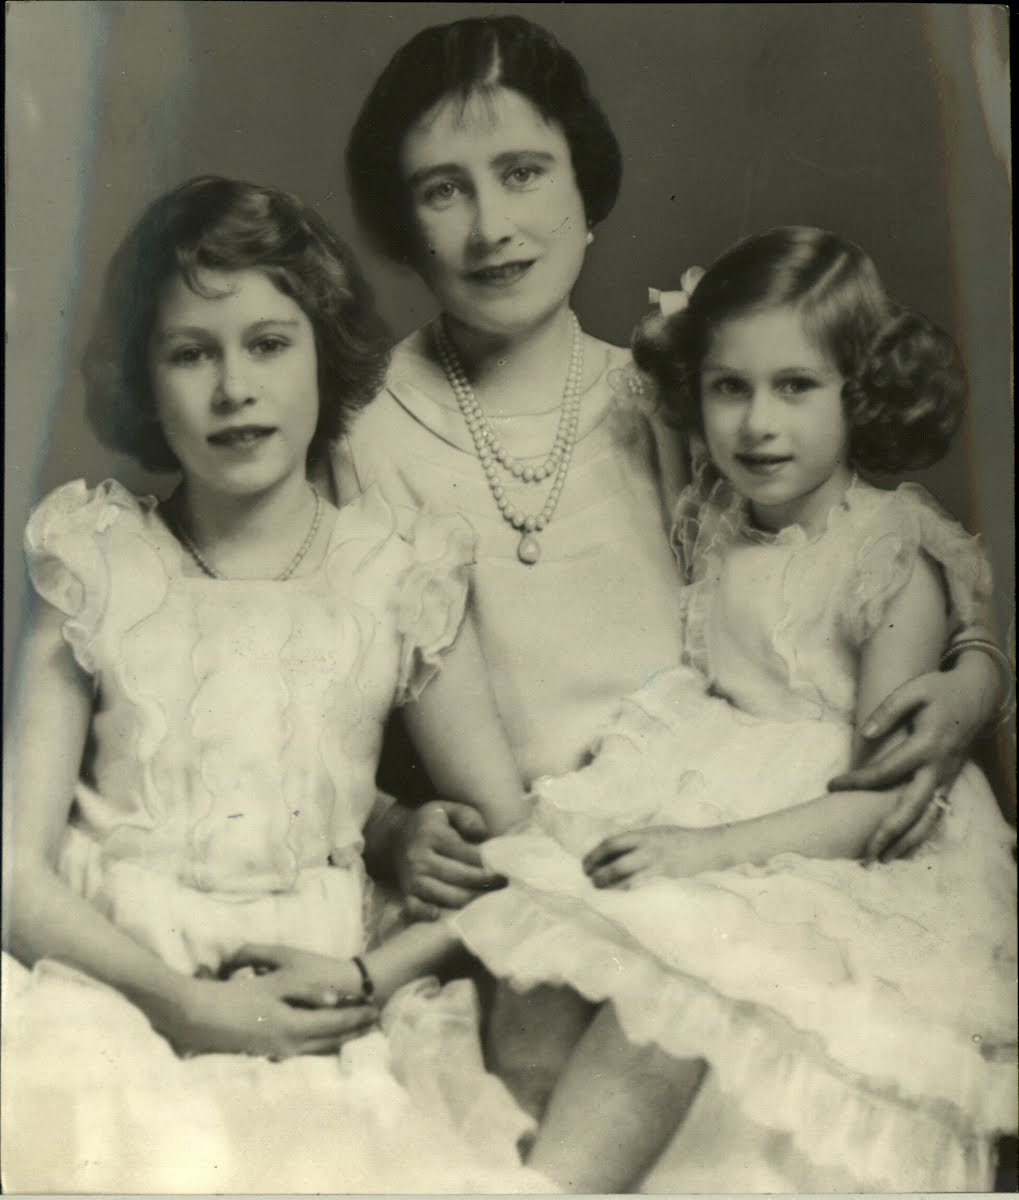 Princess Elizabeth with her mother and sister